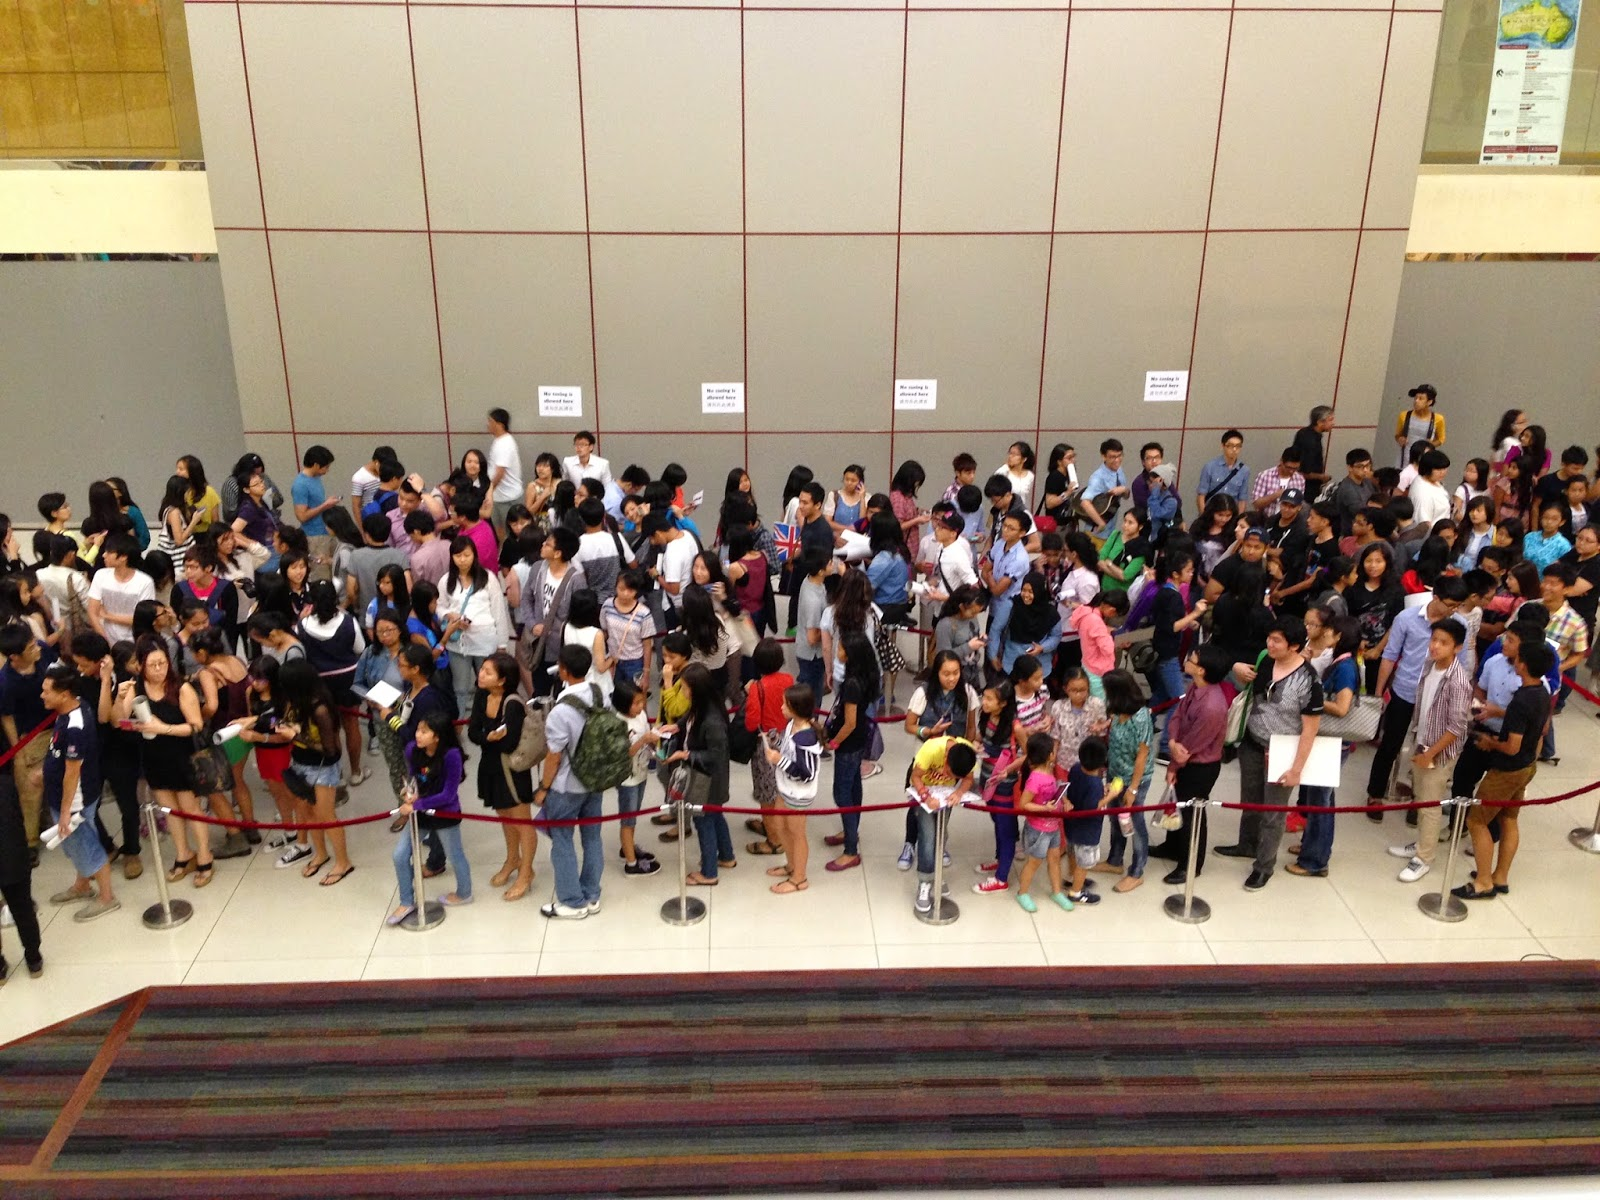 Why Singaporeans queue?